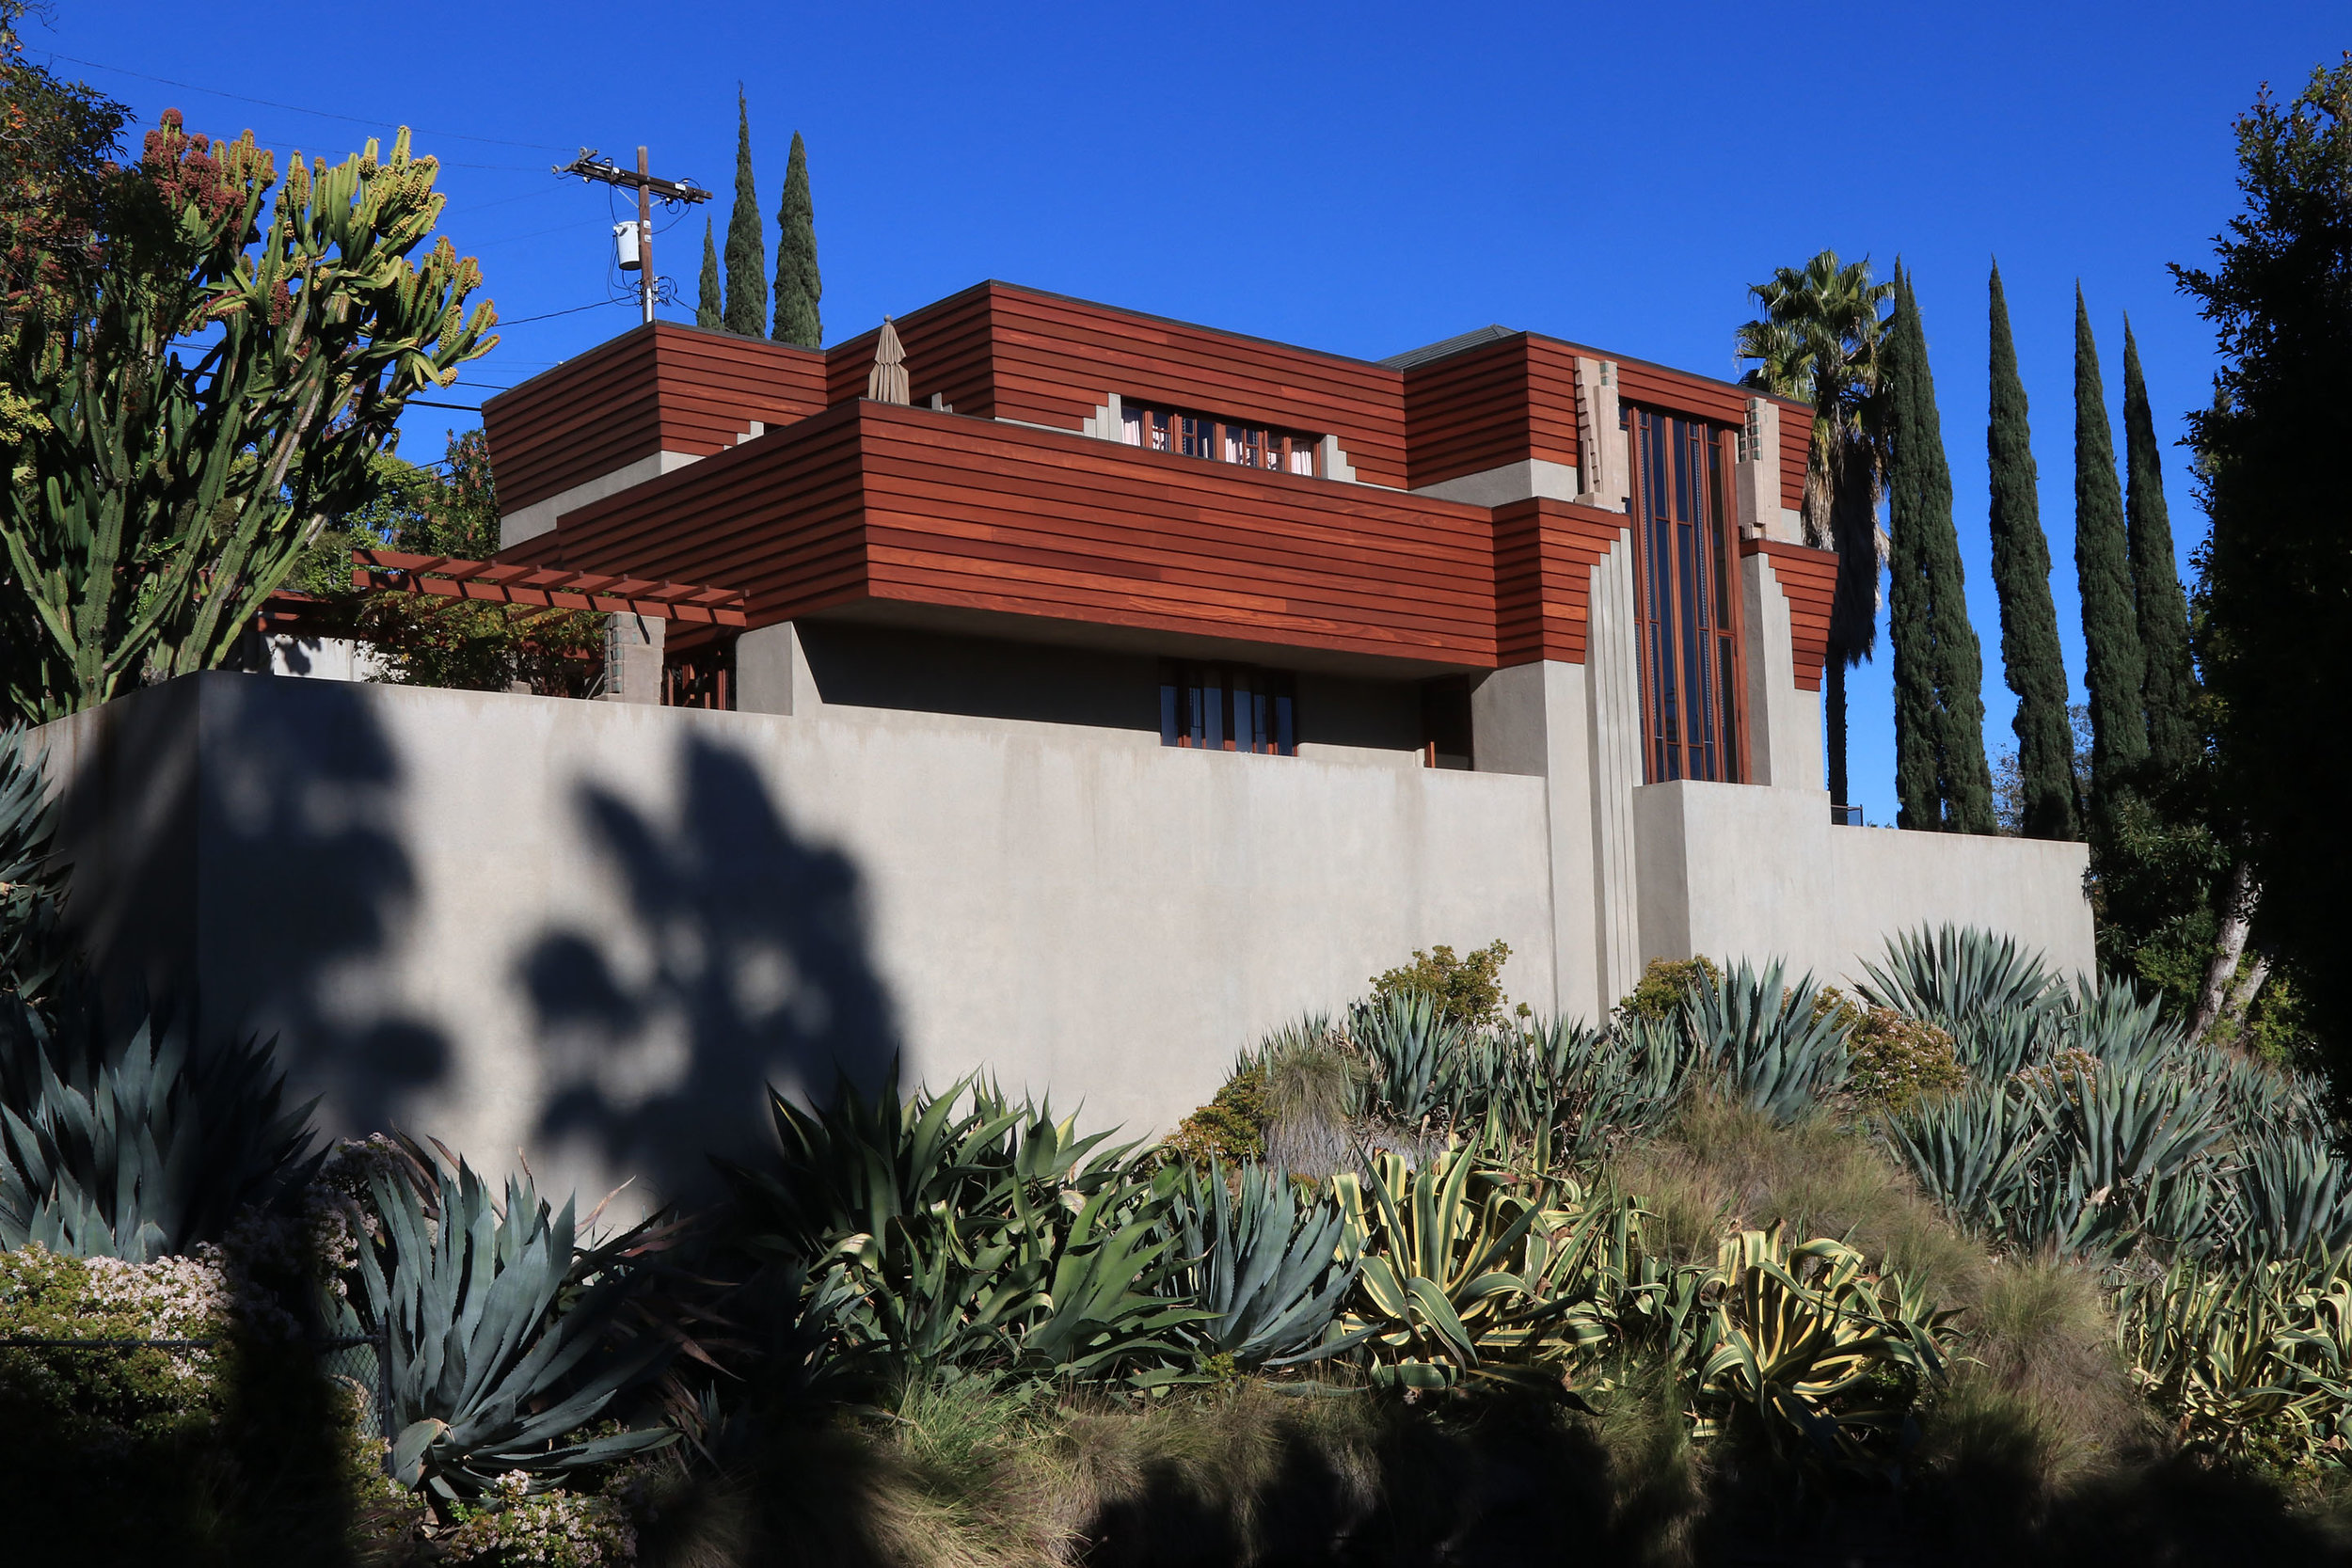 Taggart House - Lloyd Wright. 1922-23. Los Feliz, Los Angeles.   Learn more about the noteworthy architecture in the neighborhood of Los Feliz....